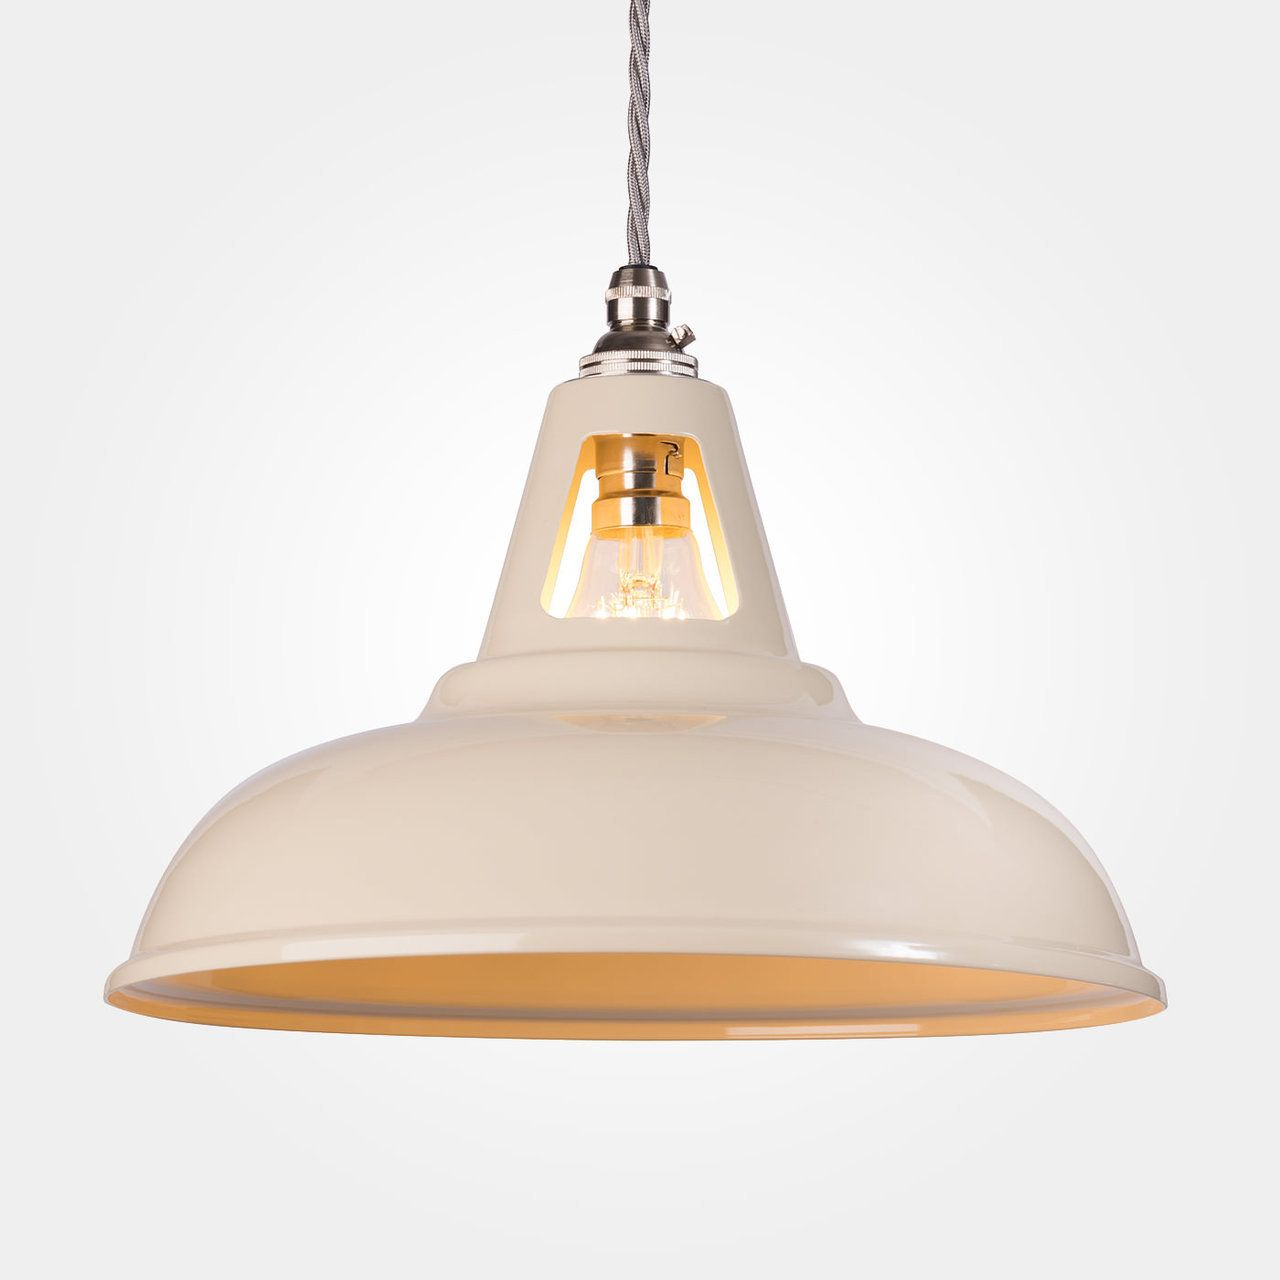 Coolicon industrial pendant light ivory pendant lighting